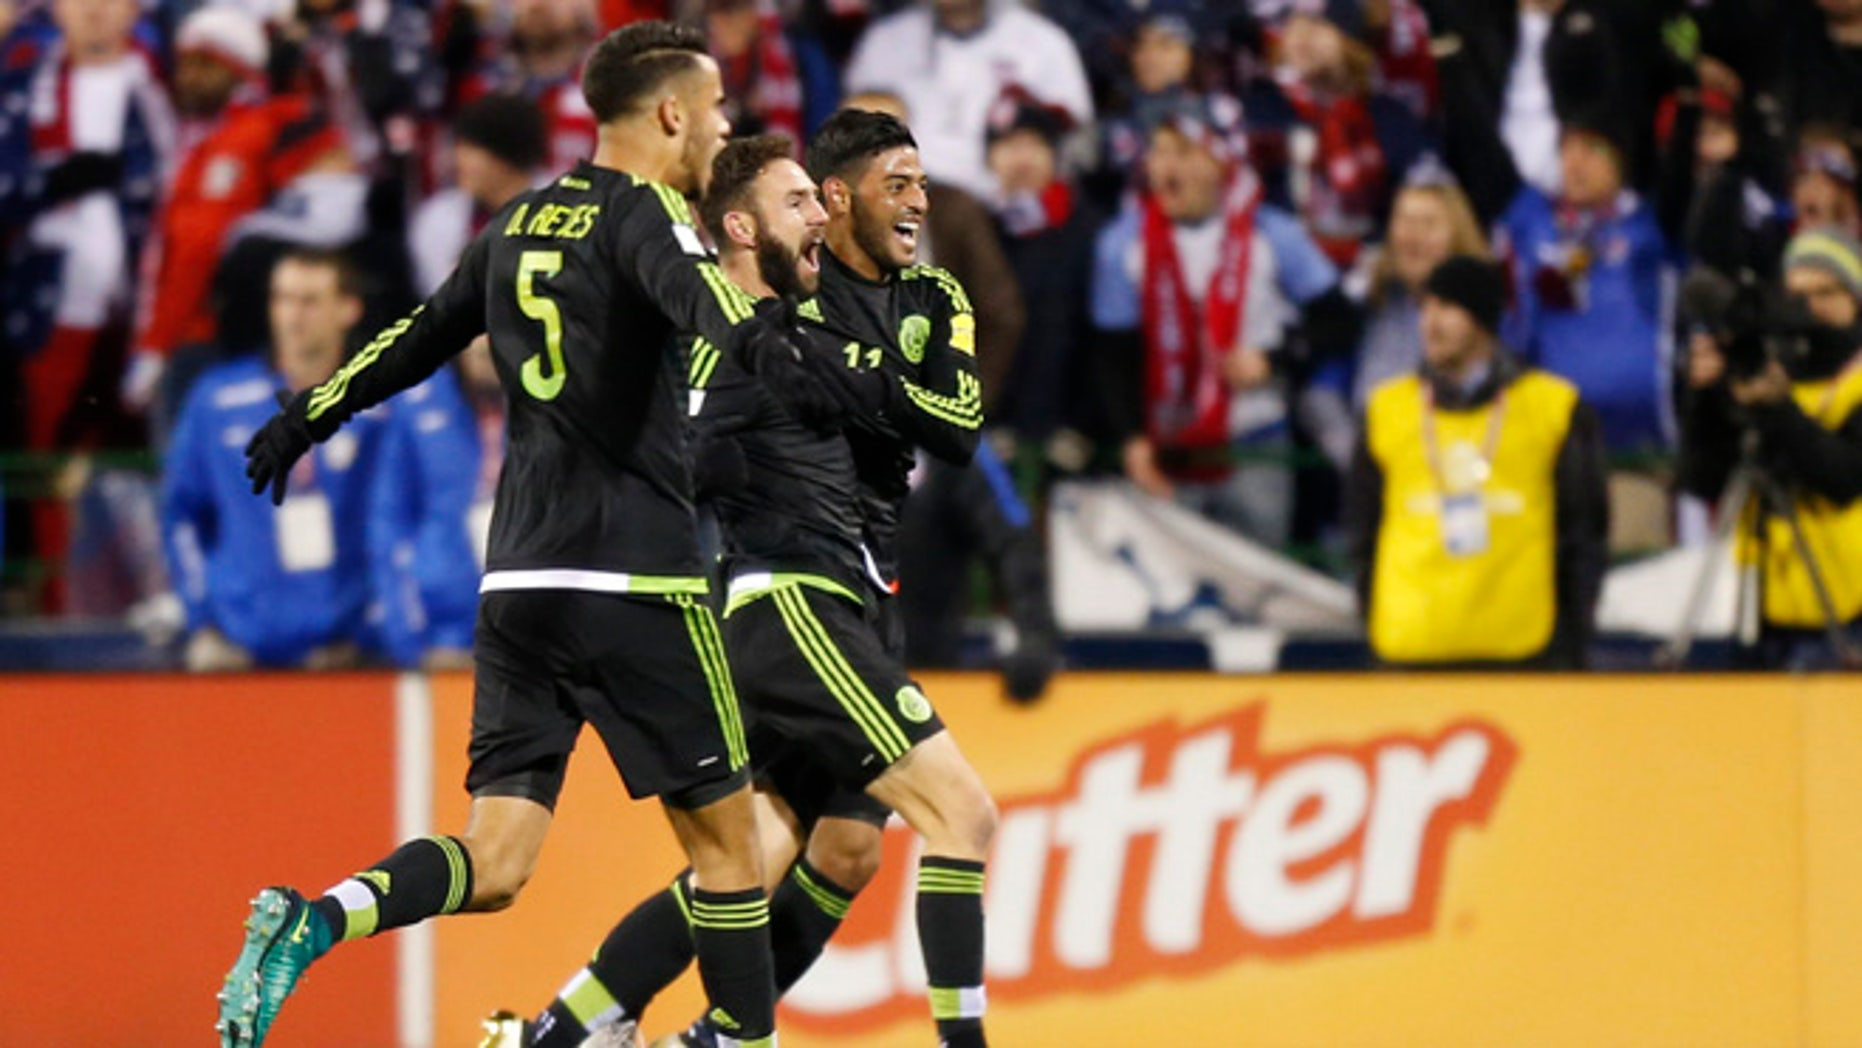 From left to right, Mexico's Diego Reyes, Miguel Layun and Carlos Vela celebrate their goal against the United States during the first half of a World Cup qualifying soccer match Friday, Nov. 11, 2016, in Columbus, Ohio. (AP Photo/Jay LaPrete)